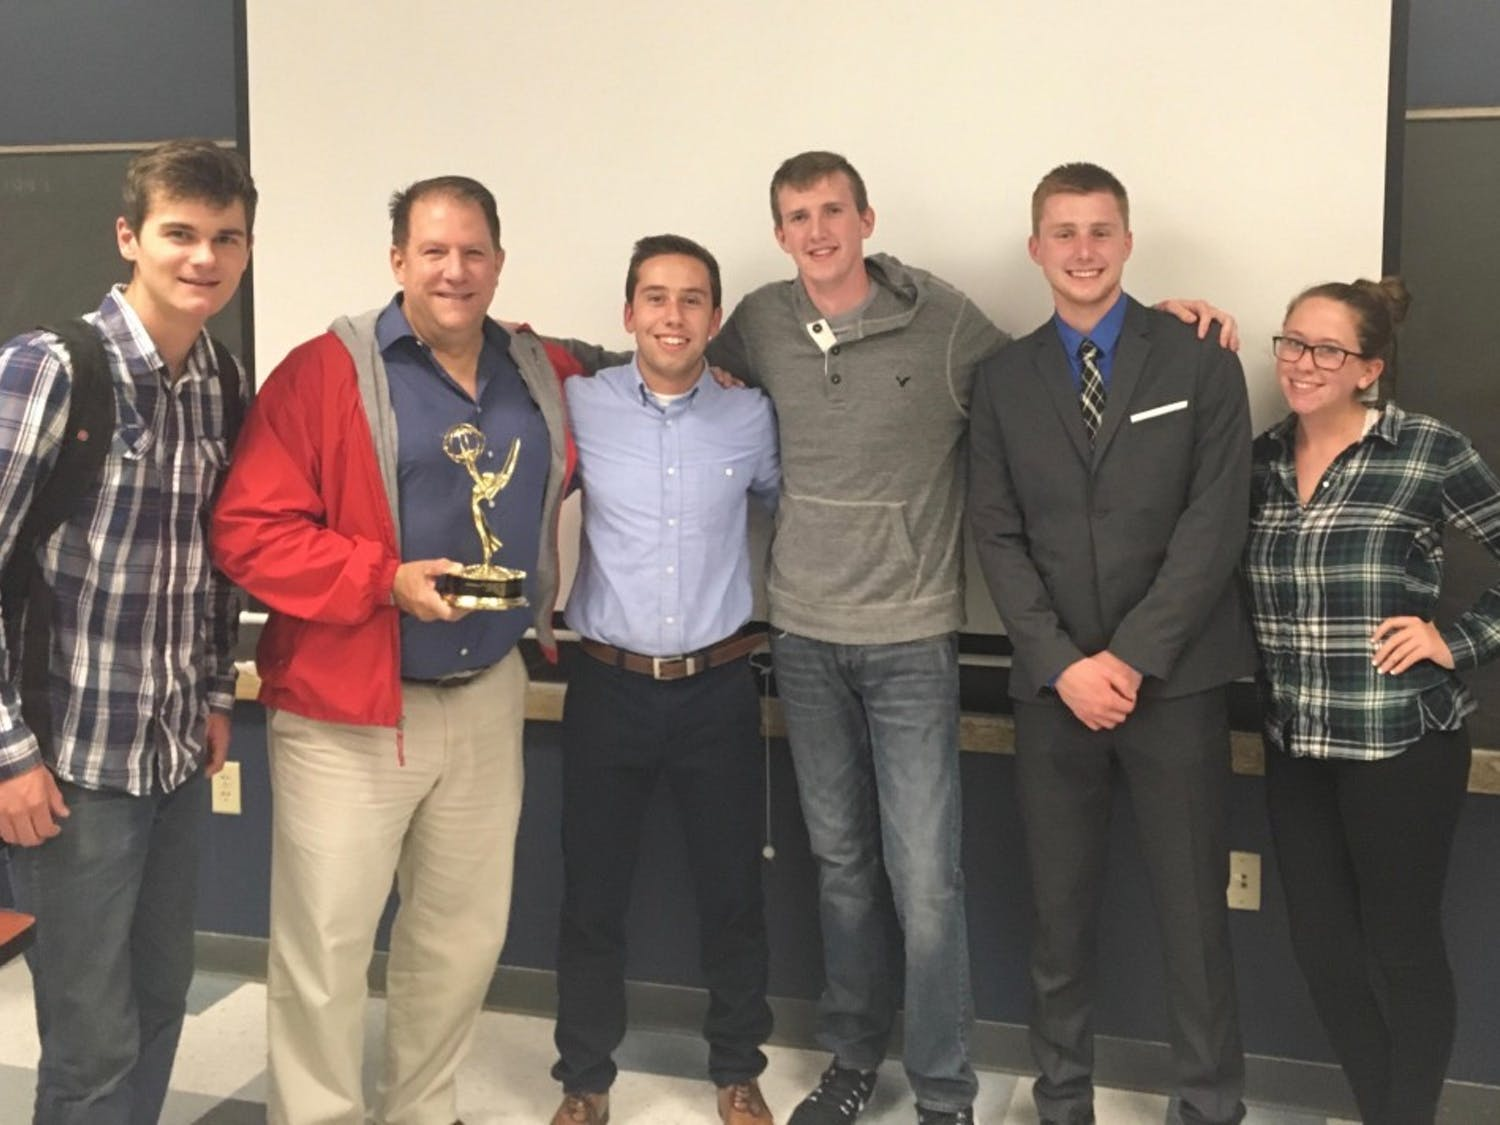 Accounting major Benjamin Corbett (third from left) stands with club members and guest speaker Dave Cash, an Emmy-winning Channel 2 News Reporter (second from left) at a weekly DECA meeting.  Corbett founded UB DECA, a club focused on building business and entrepreneurial skills, after transferring to UB.